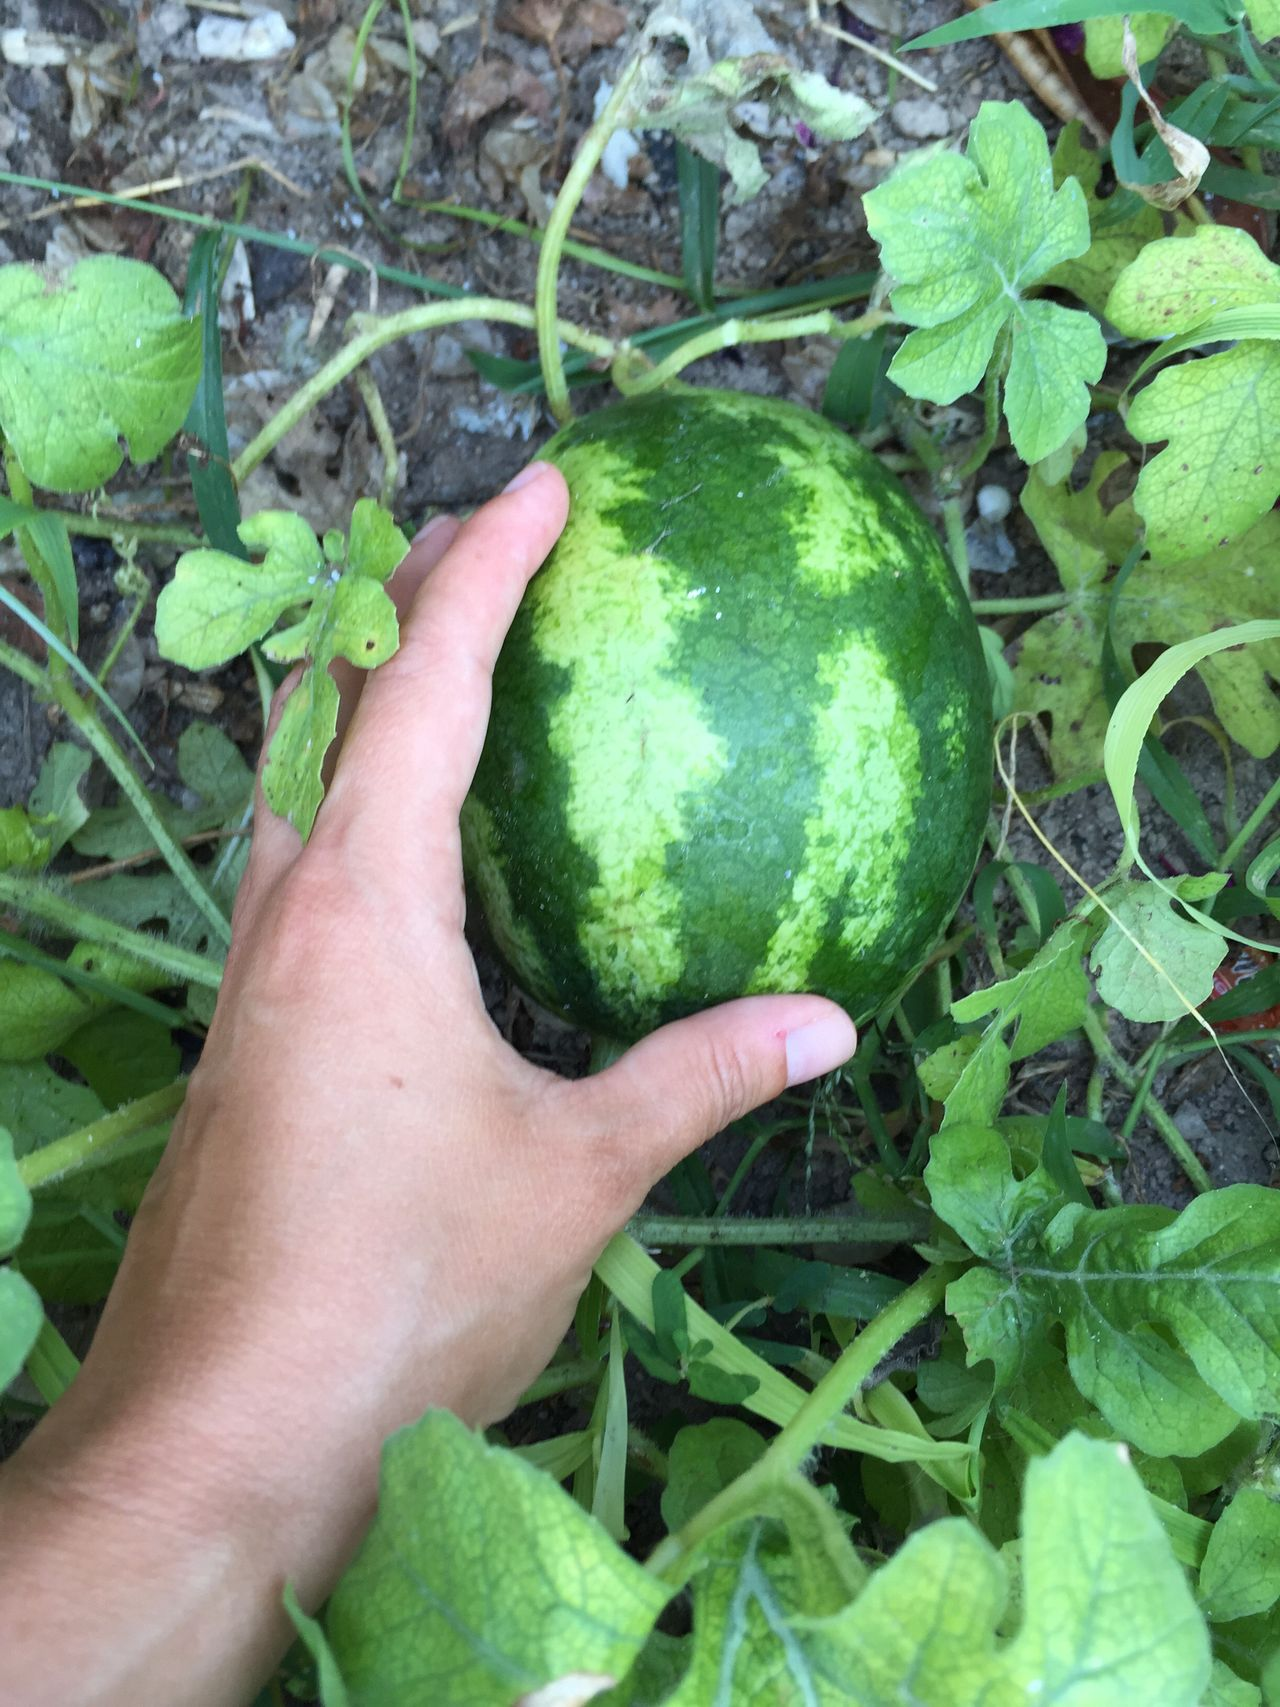 Watermelon Water Melon Green Food Plant Garden Greenery Nature Agriculture Hand Growing Plants Growth Fruit